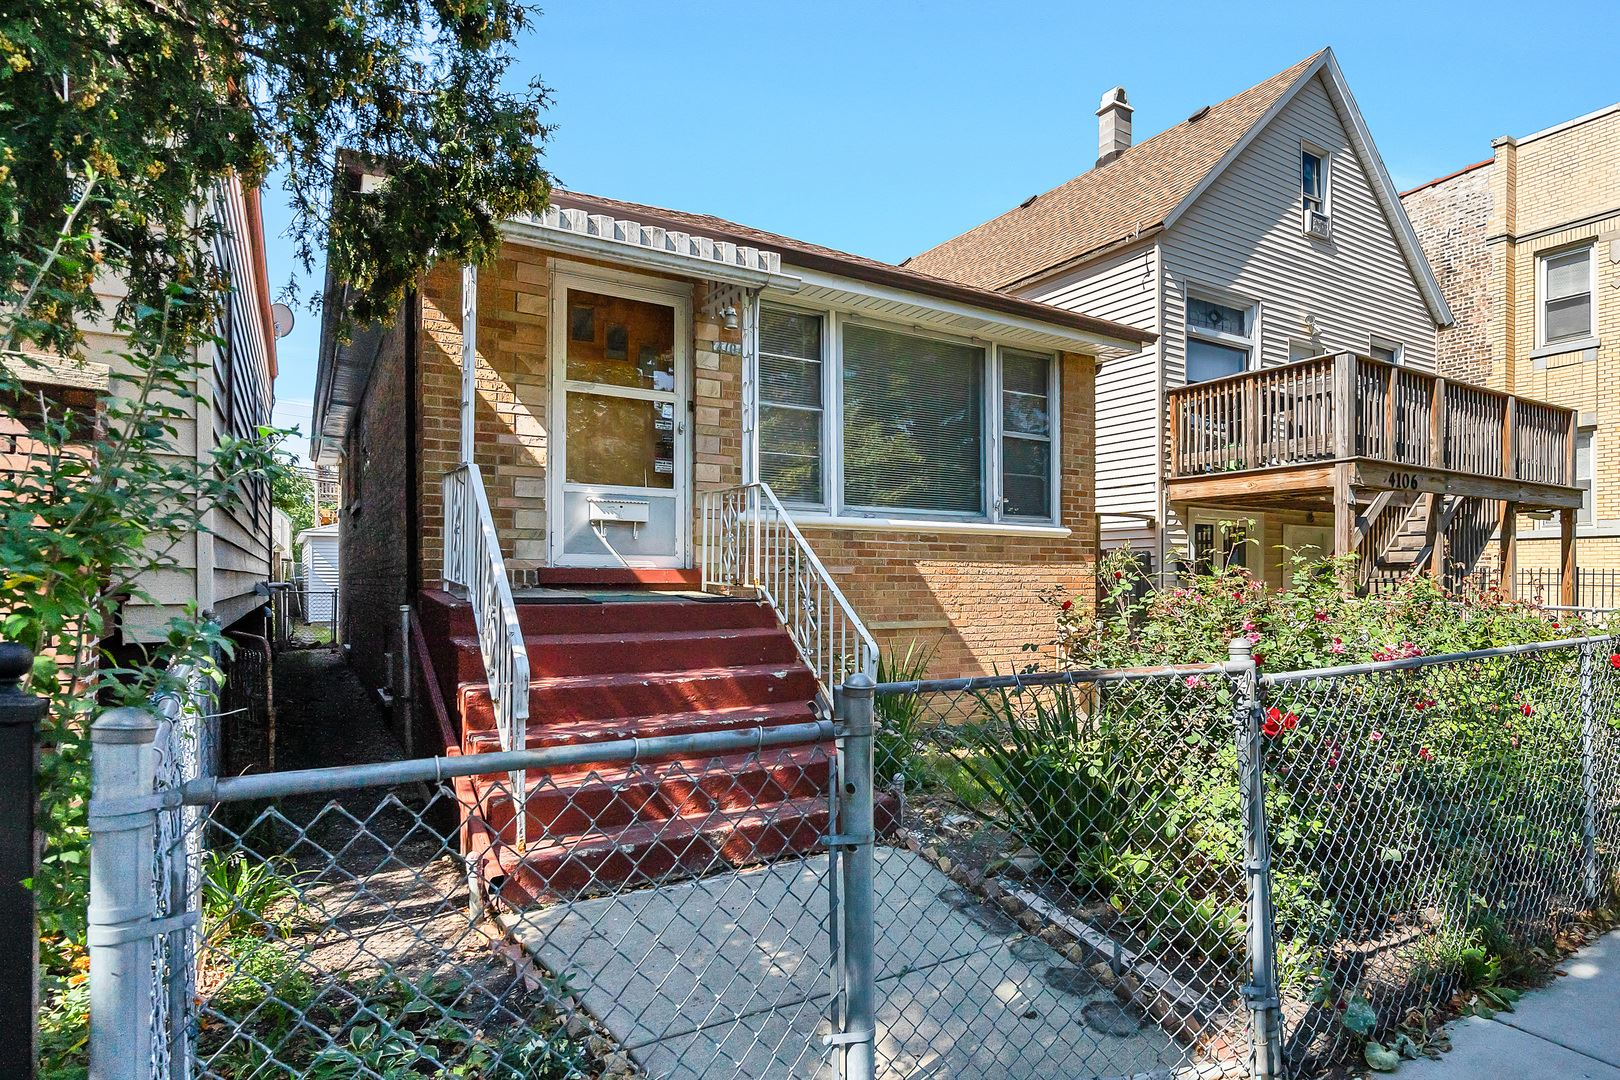 4104 N Kimball Avenue, Chicago, IL 60618 - #: 11223279